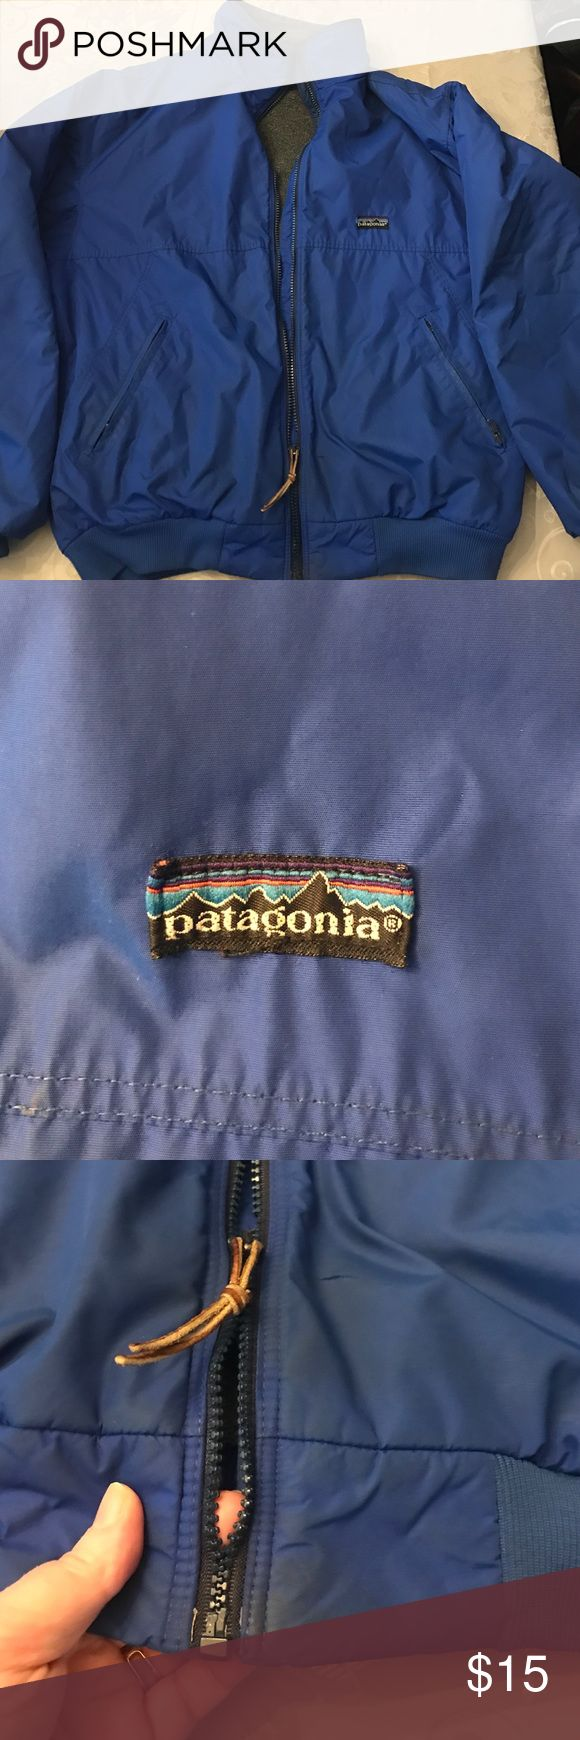 Men's Patagonia jacket Good shape but needs a new zipper. Super warm. Large. Patagonia Jackets & Coats